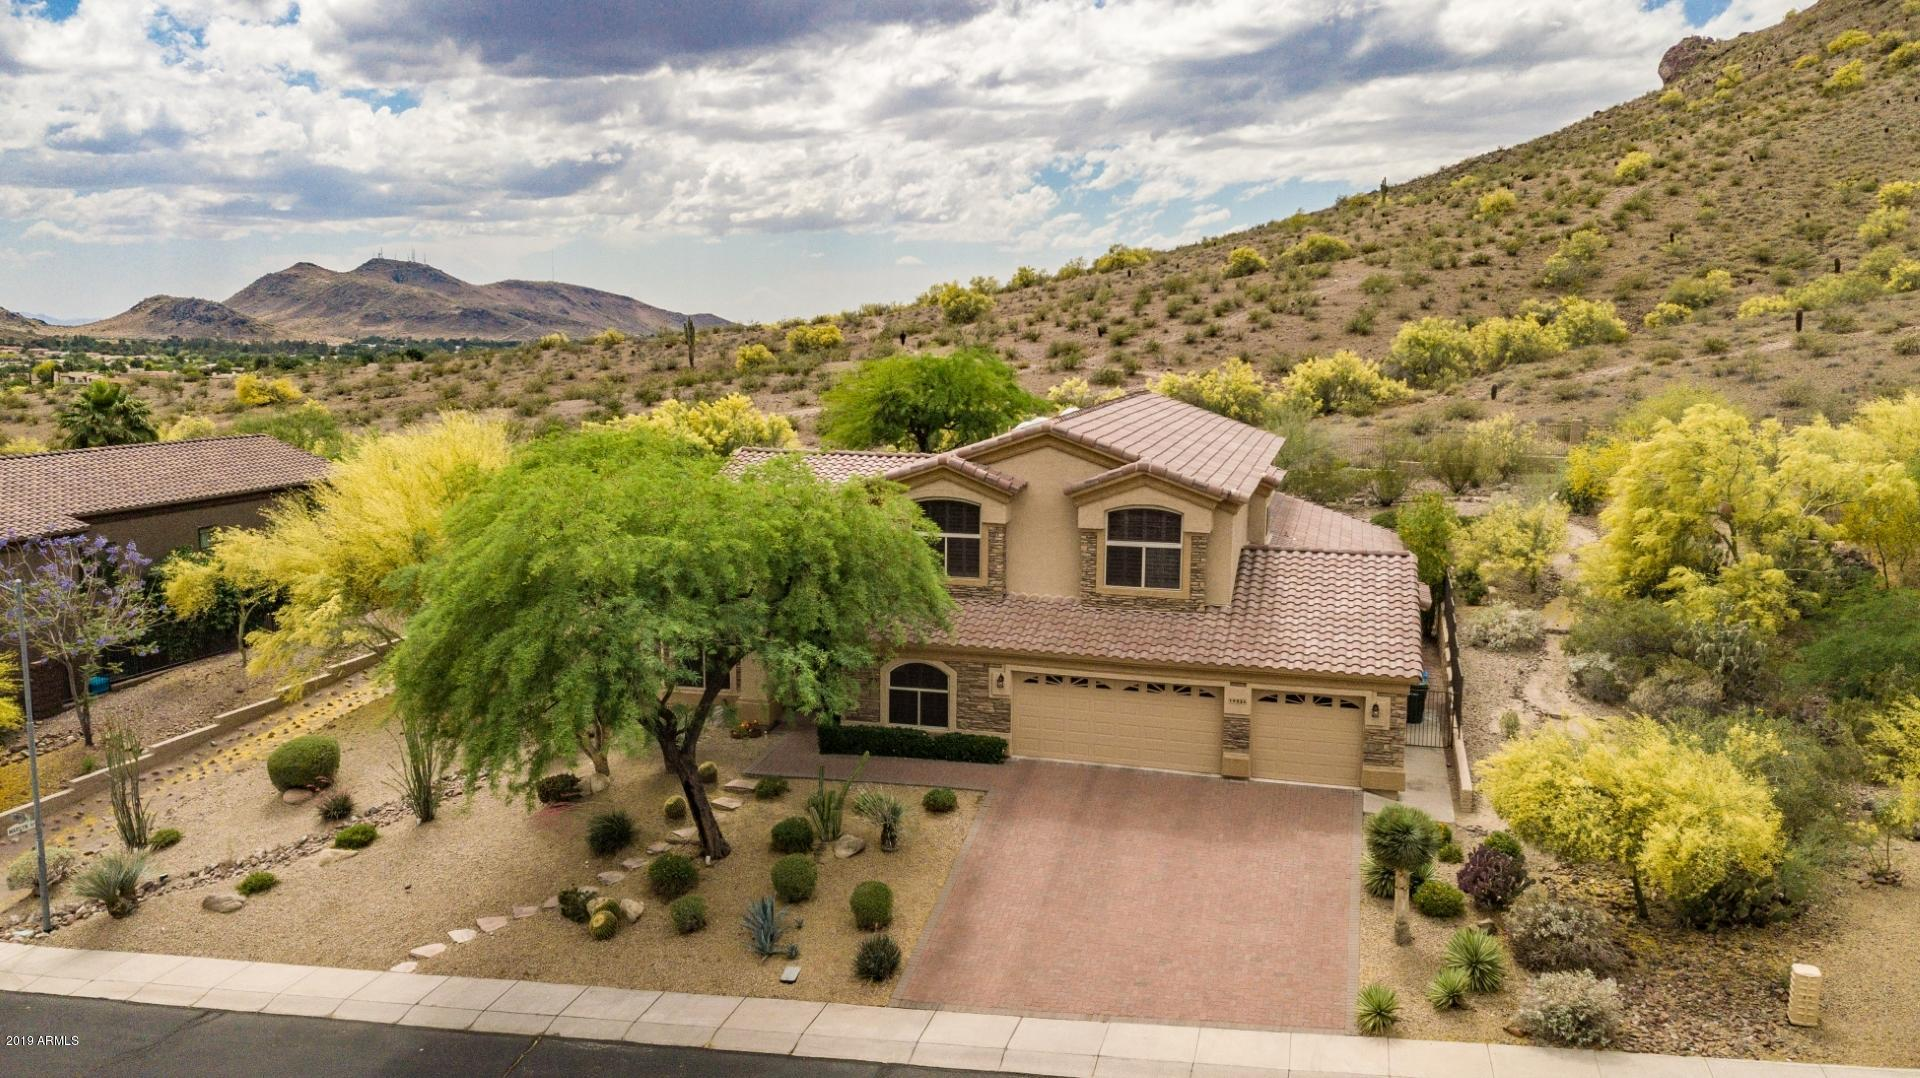 MLS 5919211 14826 N 18TH Place, Phoenix, AZ 85022 Phoenix AZ Lookout Mountain